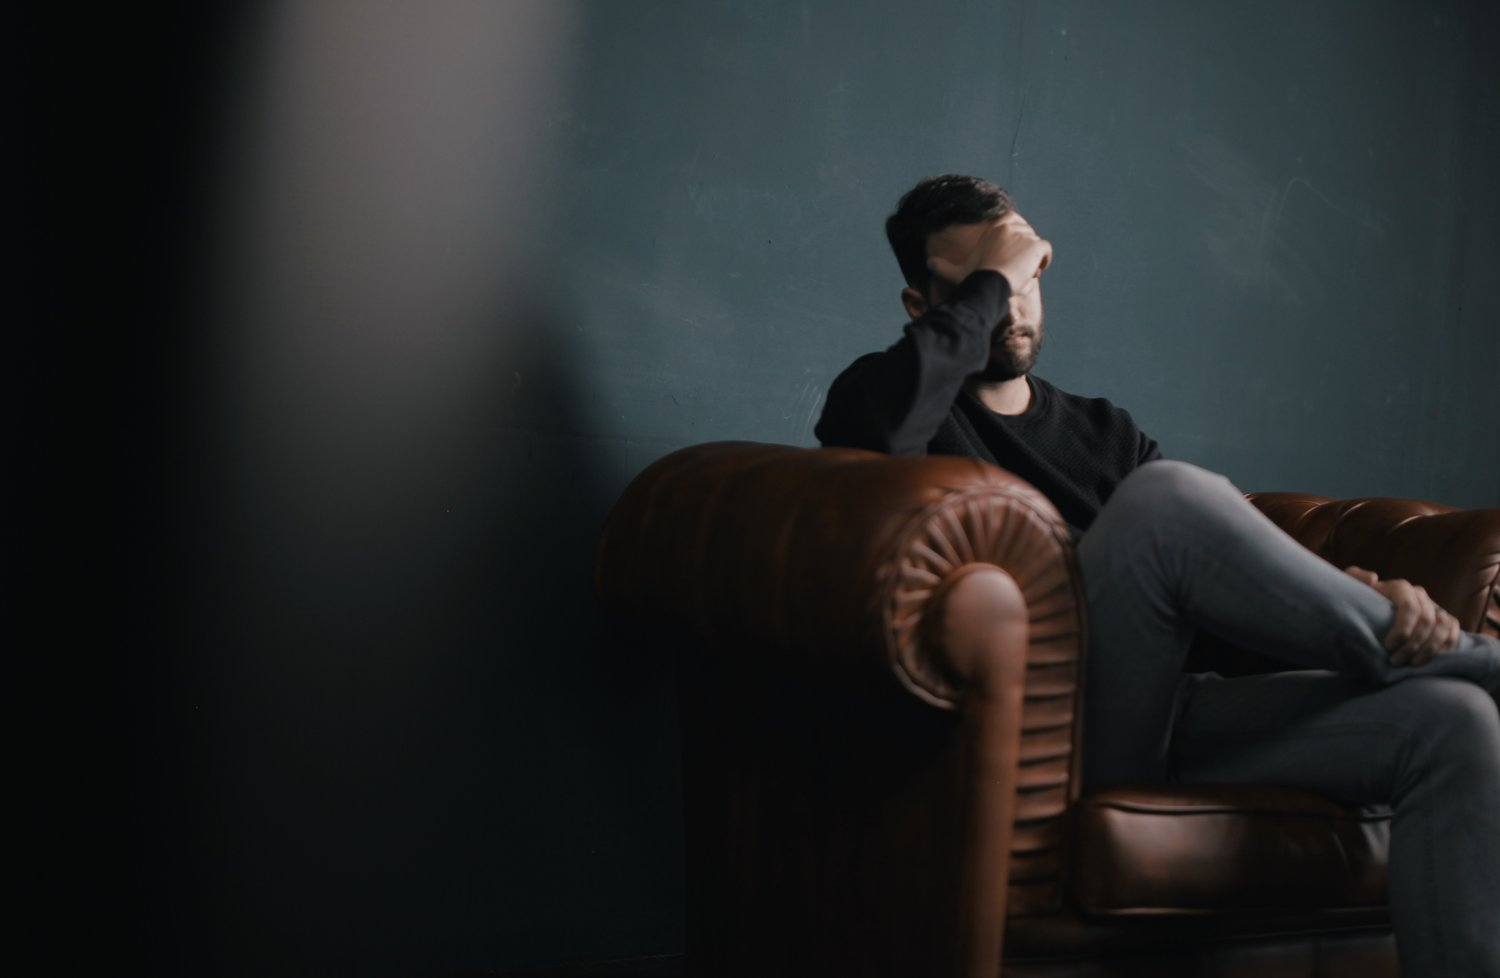 how to get your power back from a narcissist